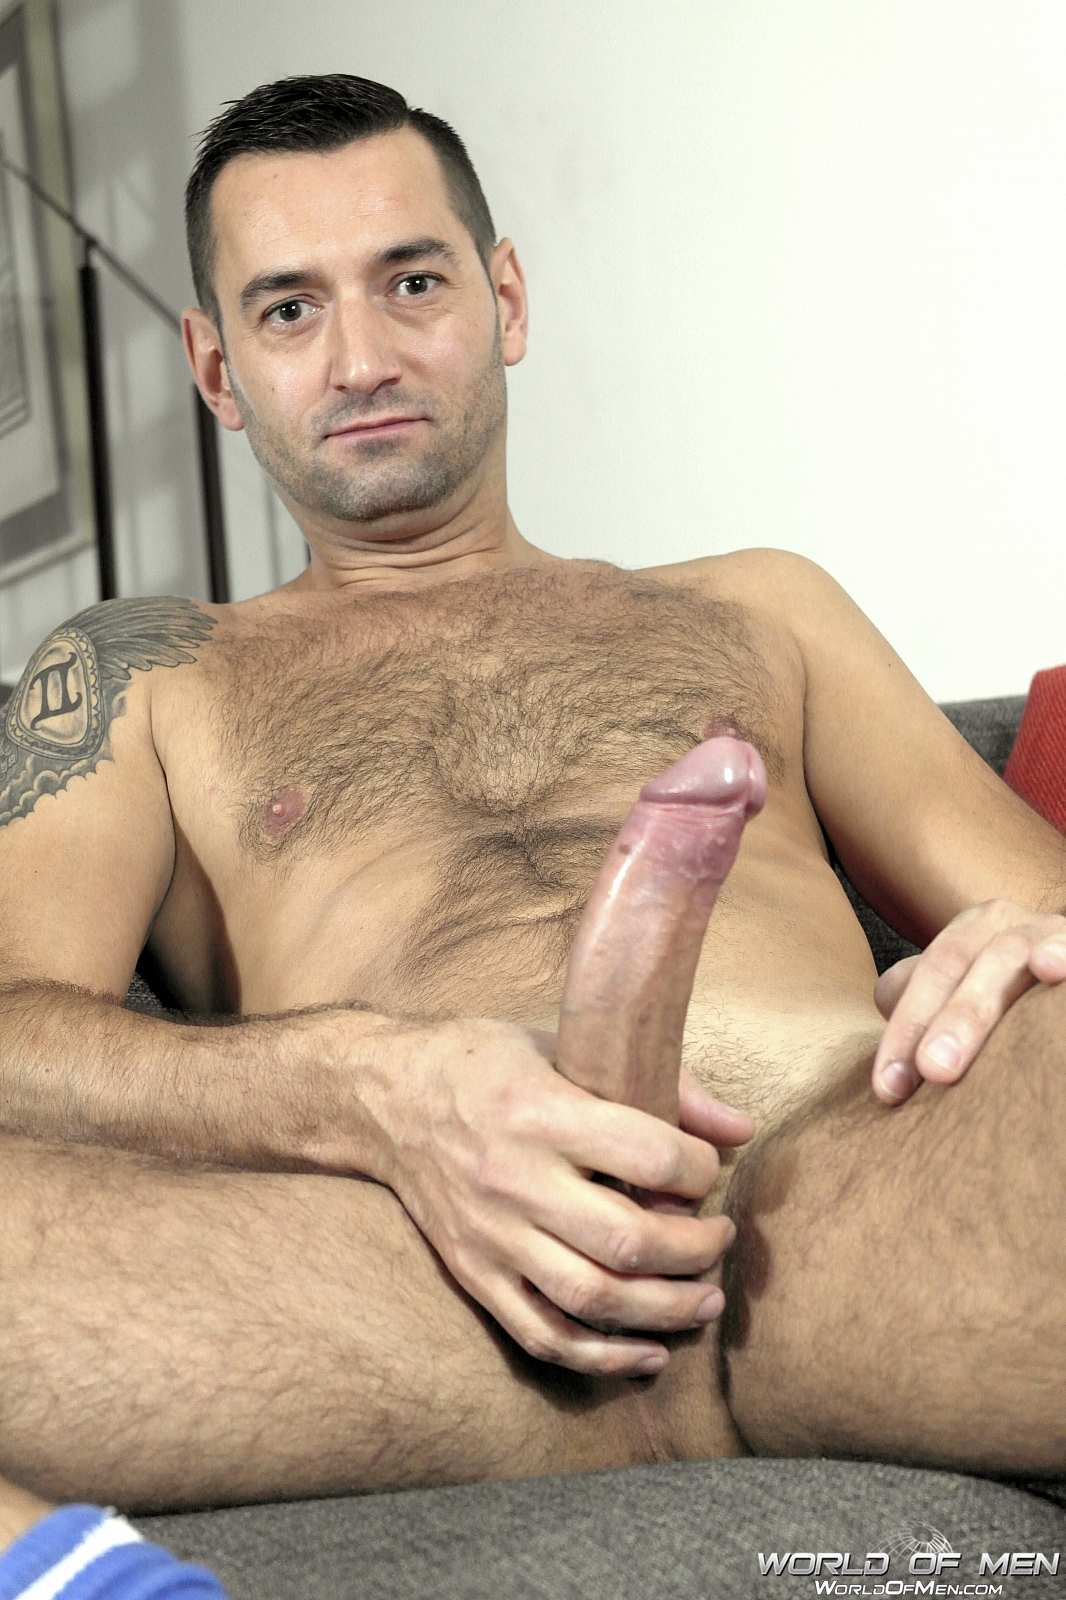 World Of Men Chris ADam Big Uncut Cock Jerk Off Masturbation Amateur Gay Porn 11 Hairy Sexy Stud Fingers His Ass And Plays With His Huge Uncut Cock